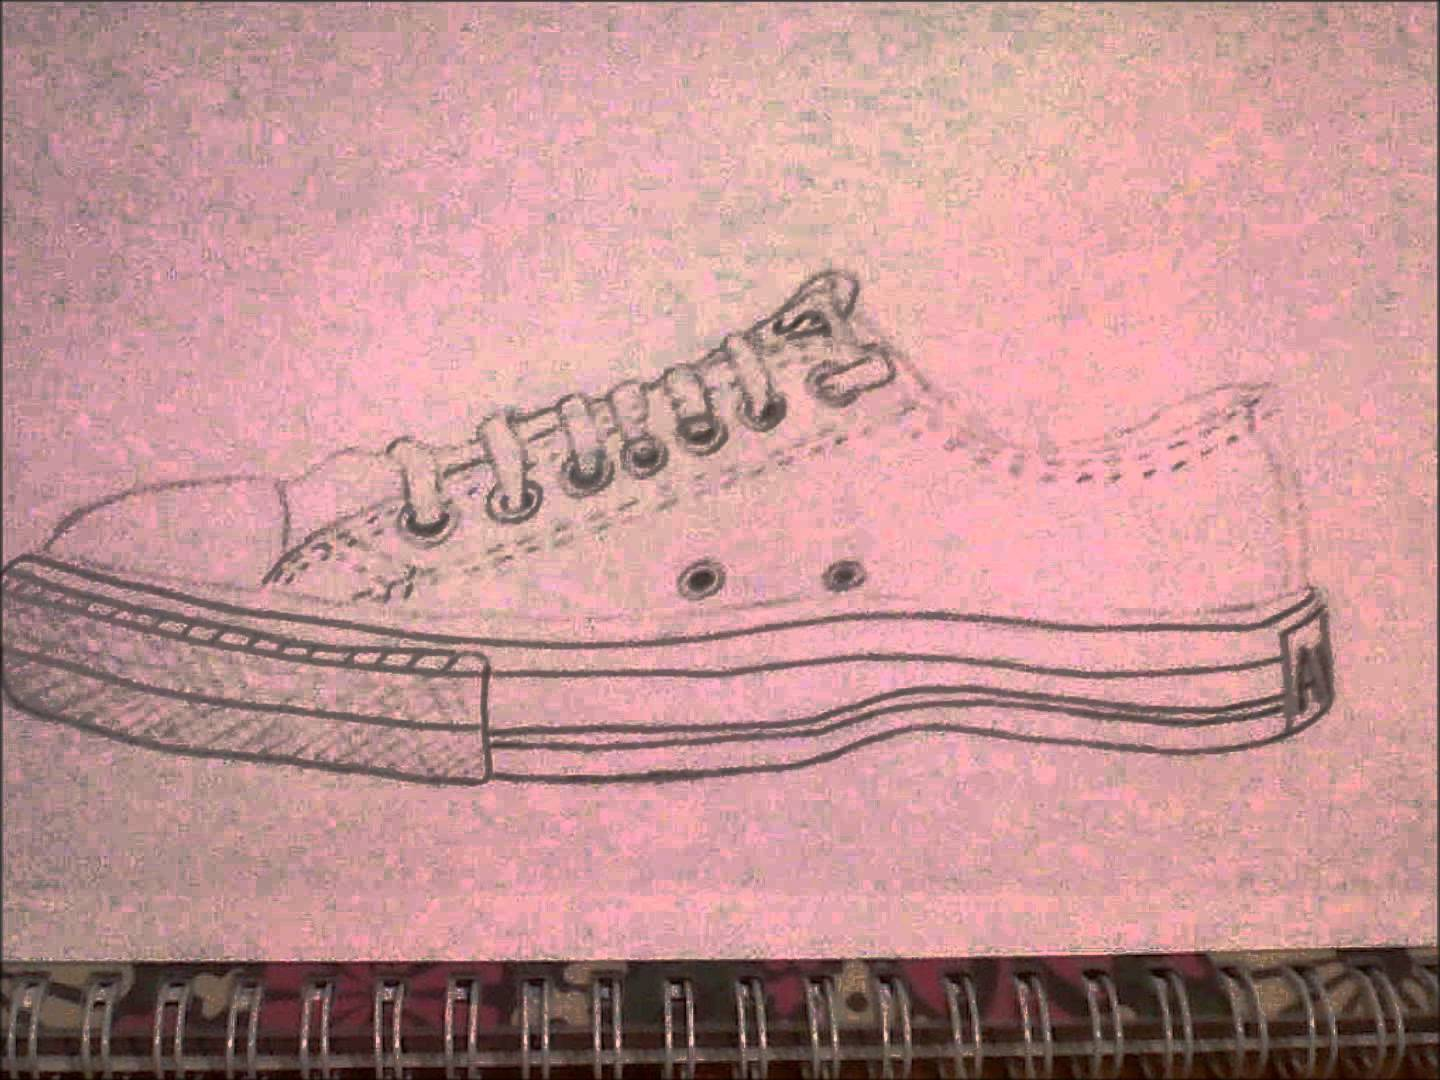 Drawn converse all star Converse of Drawing a YouTube